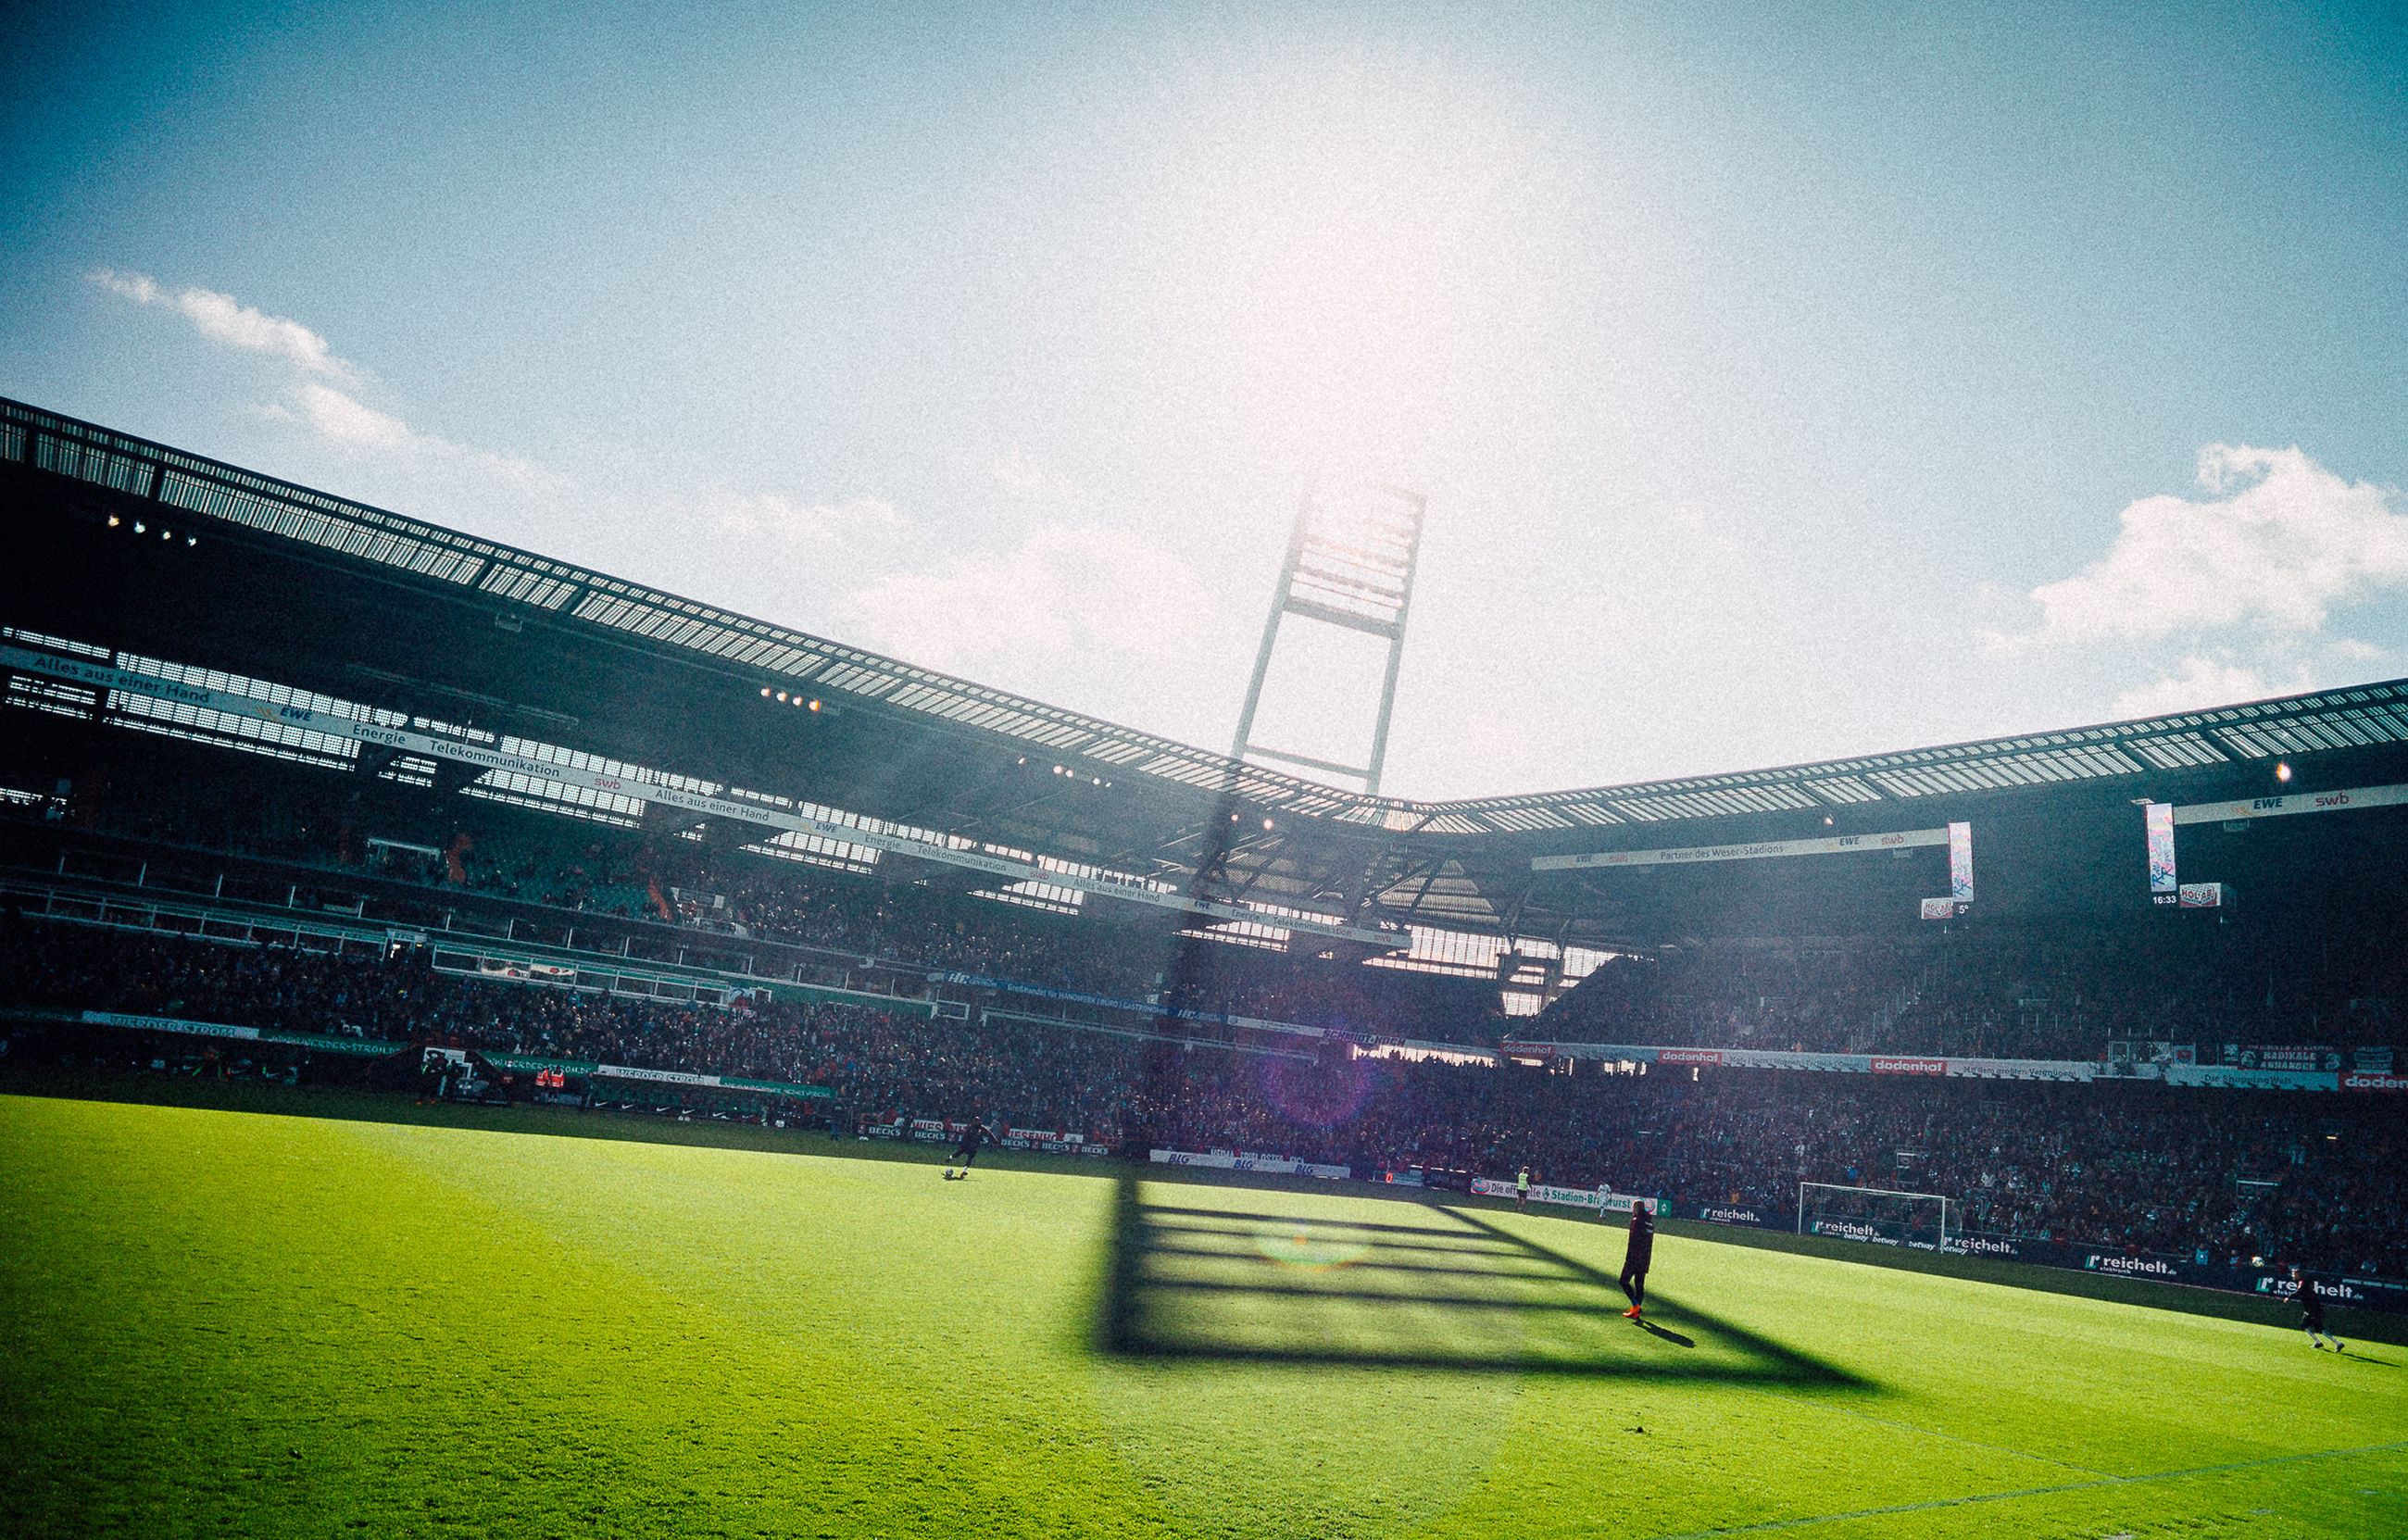 grass, stadium, sky, sport, soccer, team sport, nature, cloud - sky, day, competition, competitive sport, plant, soccer field, sunlight, playing field, crowd, outdoors, group of people, spectator, floodlit